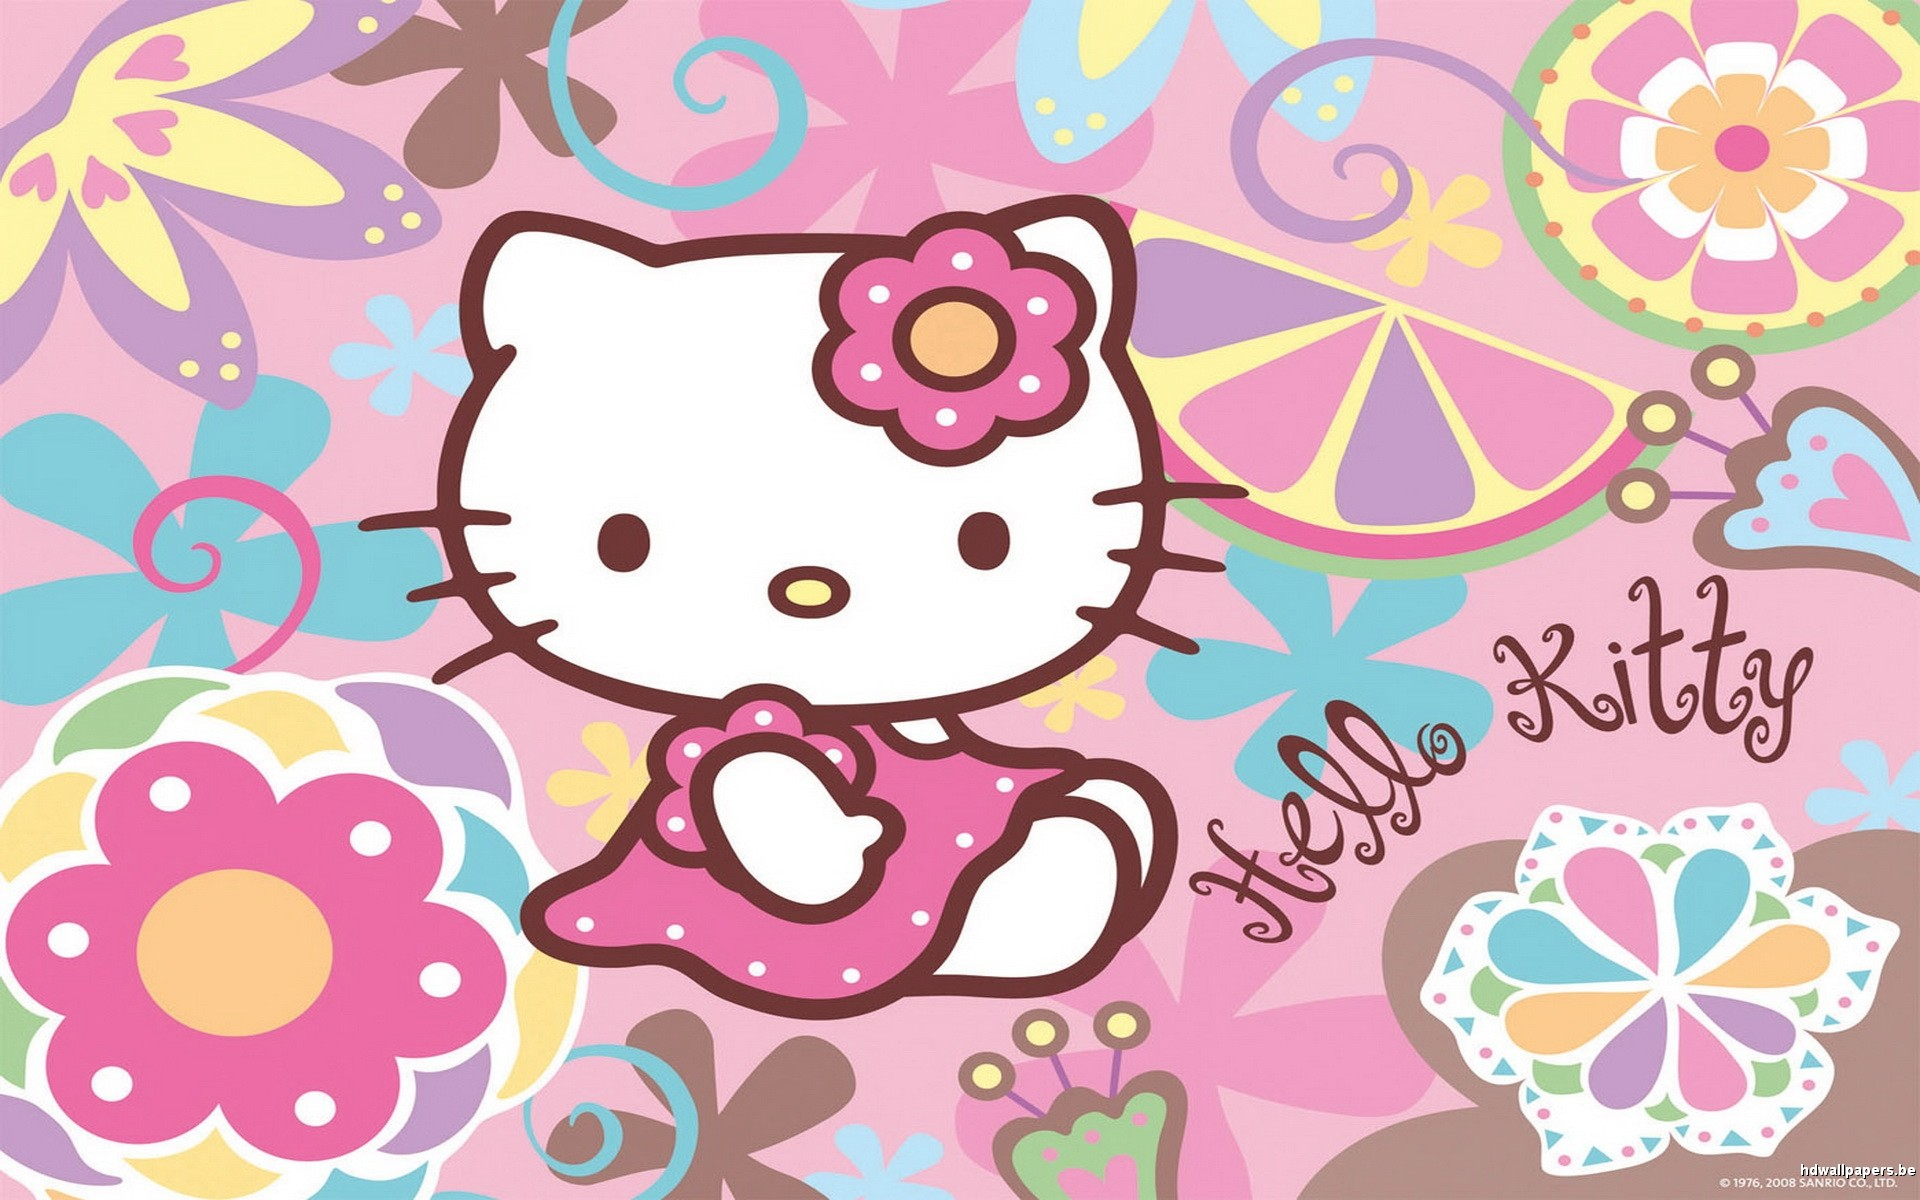 Download Wallpaper Hello Kitty Wedding - 779045-vertical-wallpaper-background-hello-kitty-1920x1200  Picture_778168.jpg